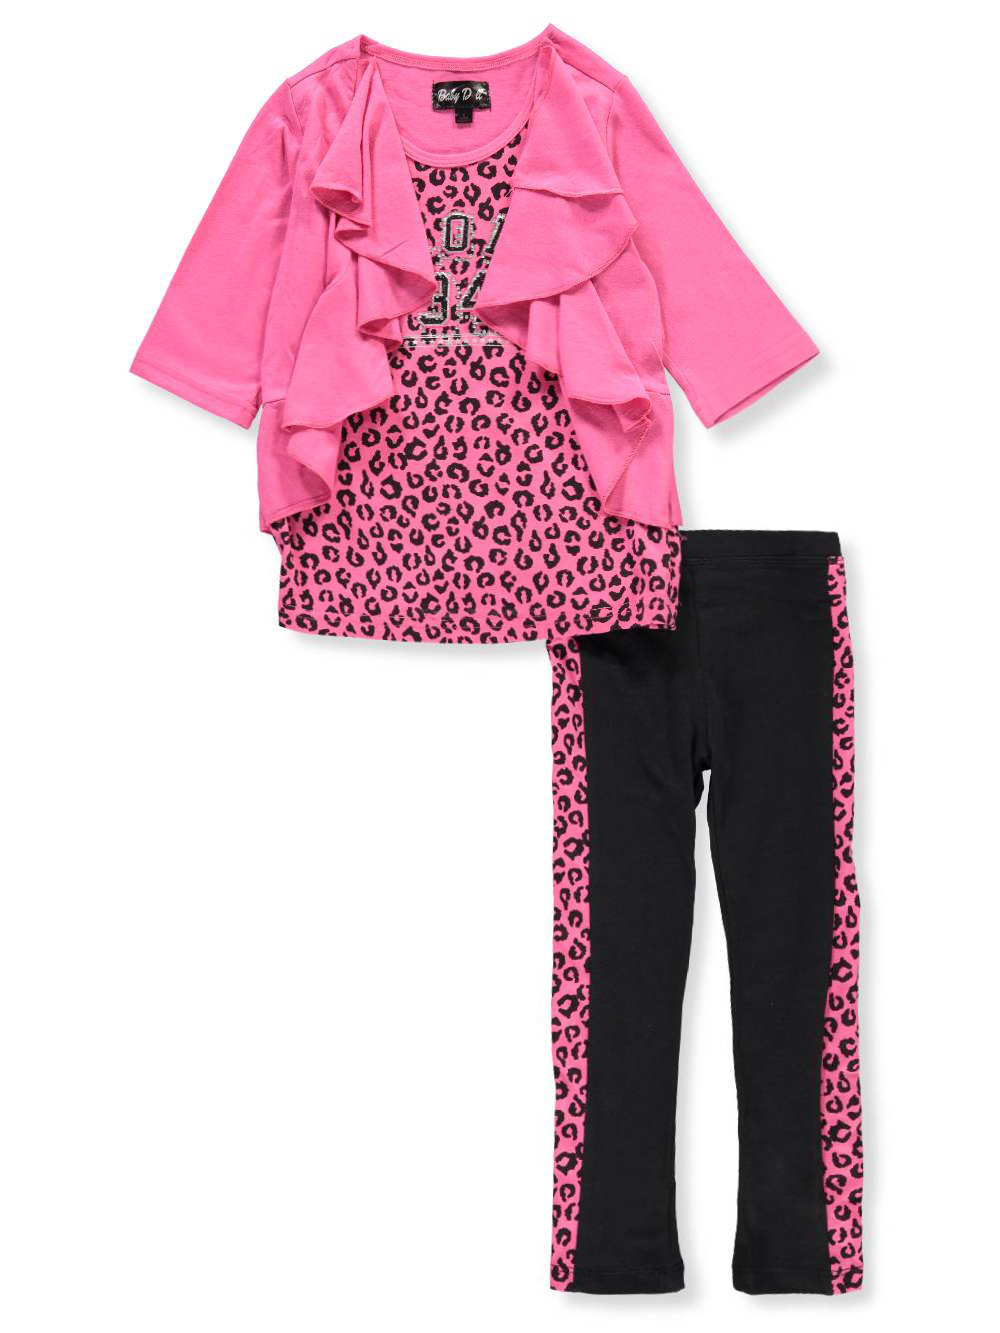 Baby Doll Girls' 2-Piece Outfit - CookiesKids.com